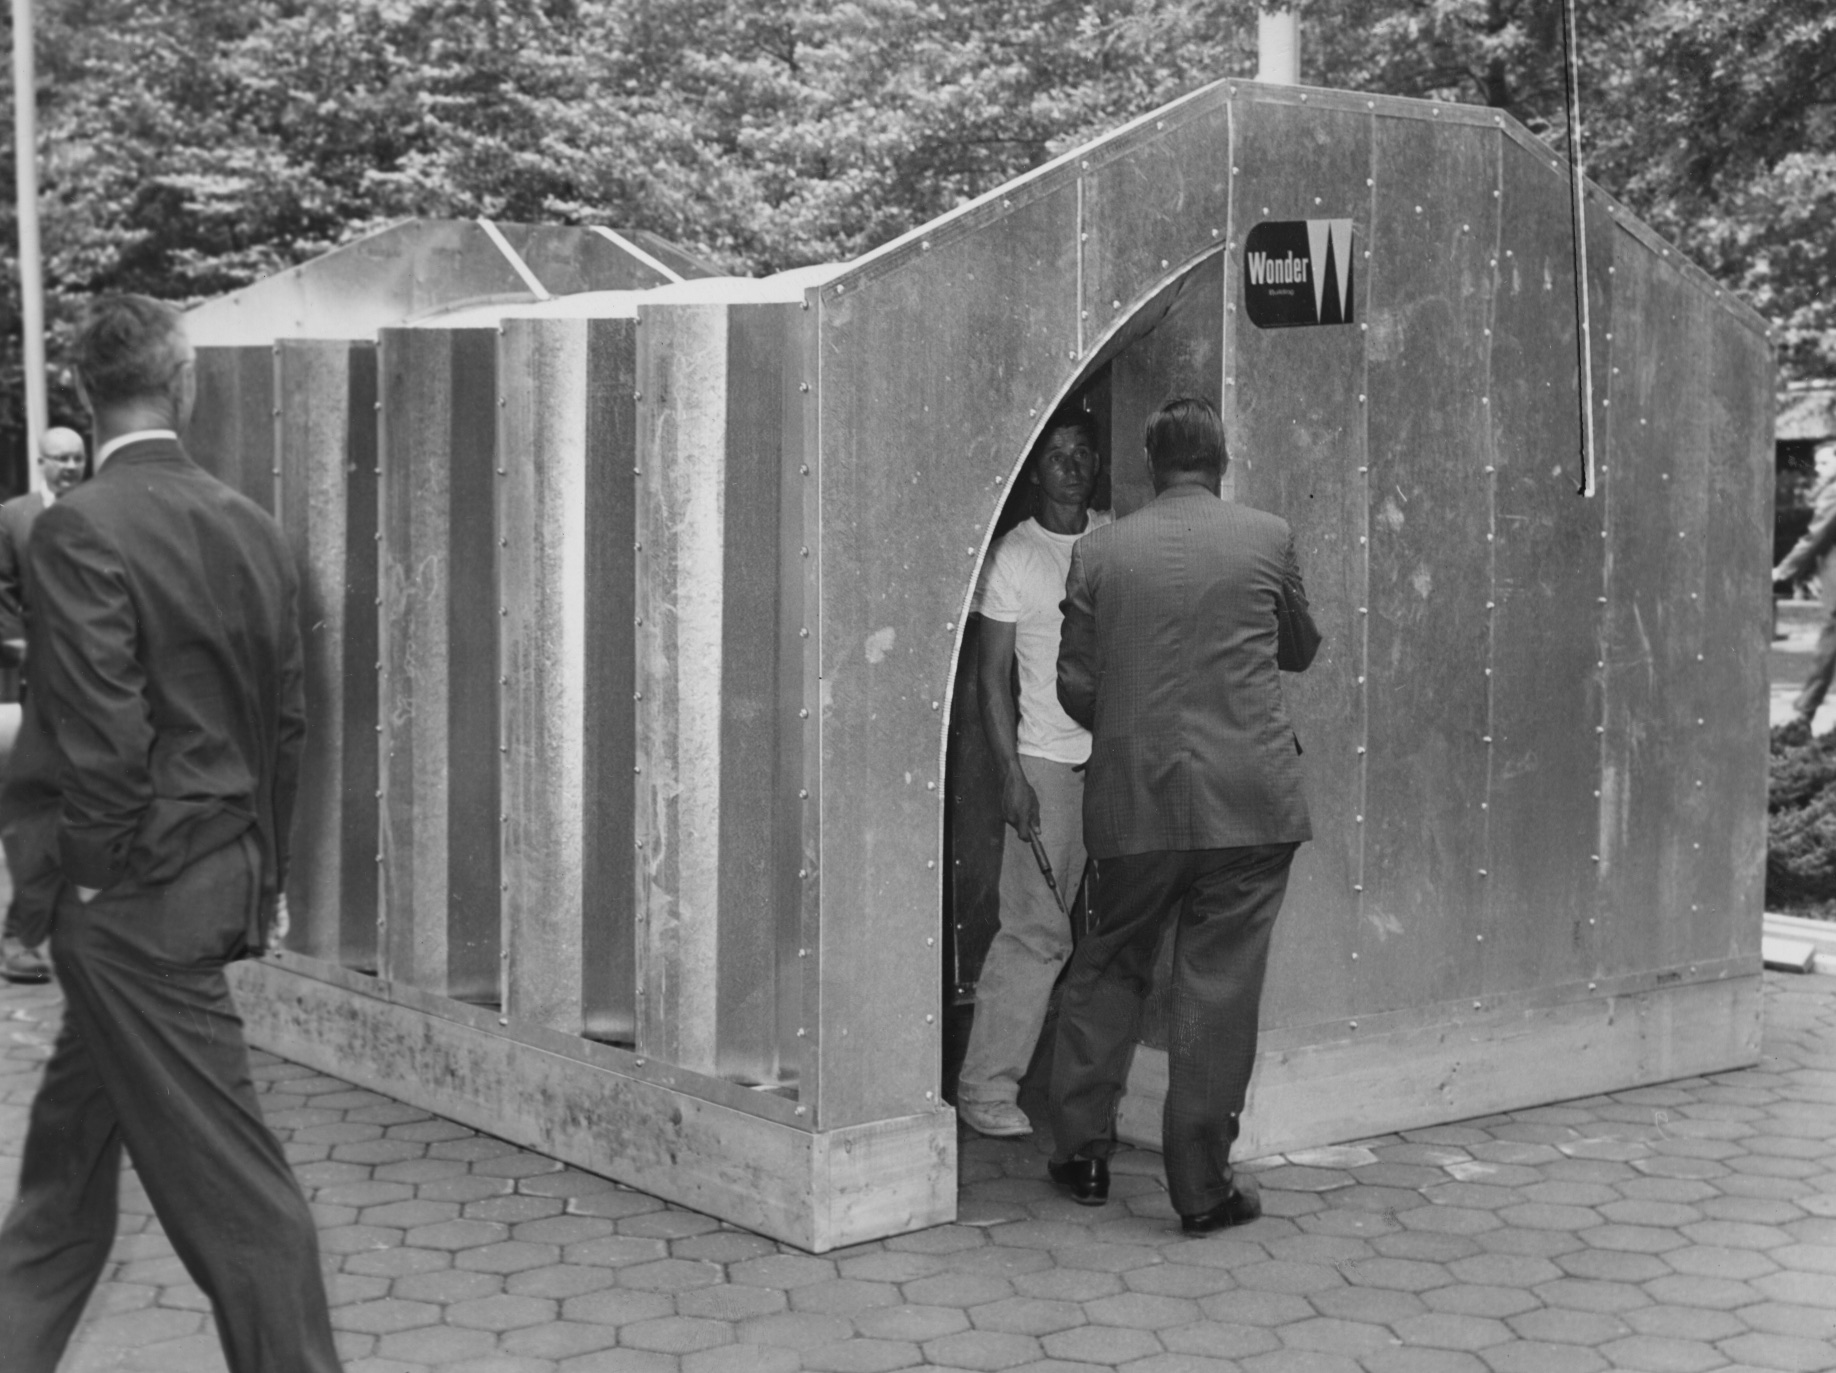 Aug. 1, 1961: No caption provided on the location of or people in this fallout shelter. (Don Bindyke/Post-Gazette)